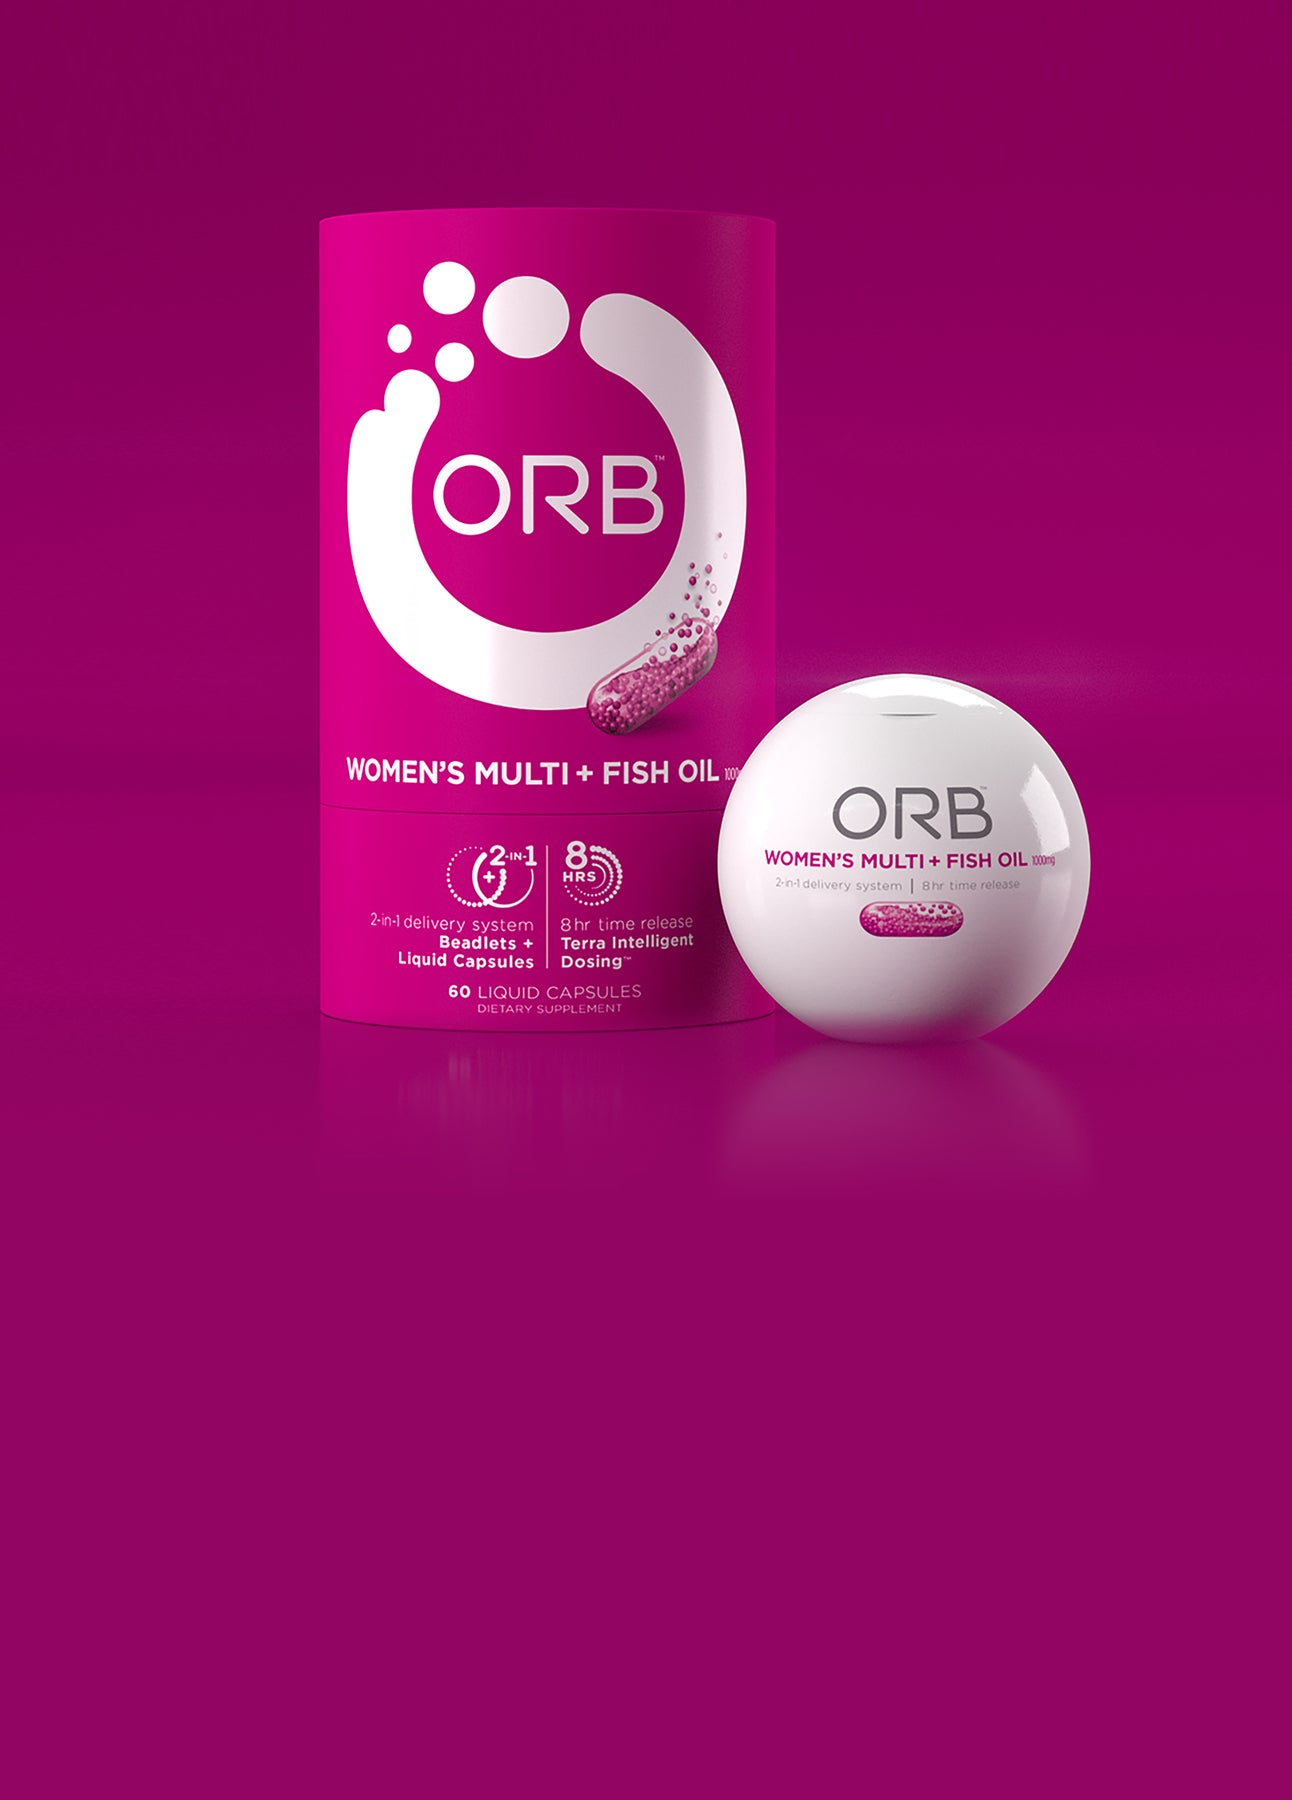 Orb product image